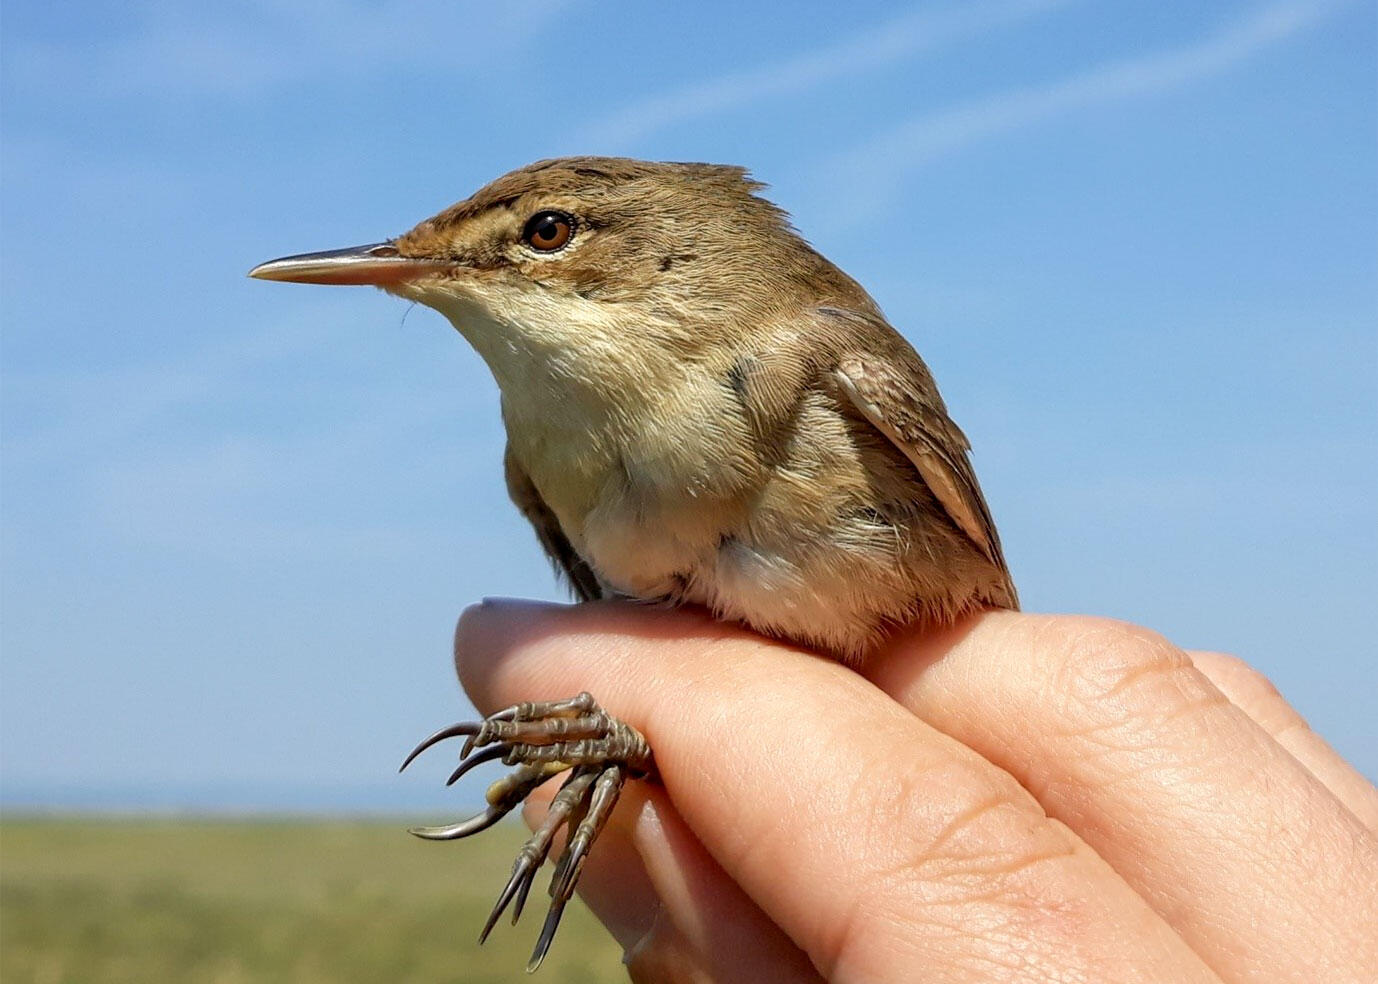 Eurasian Reed Warbler used in the study. Florian Packmor